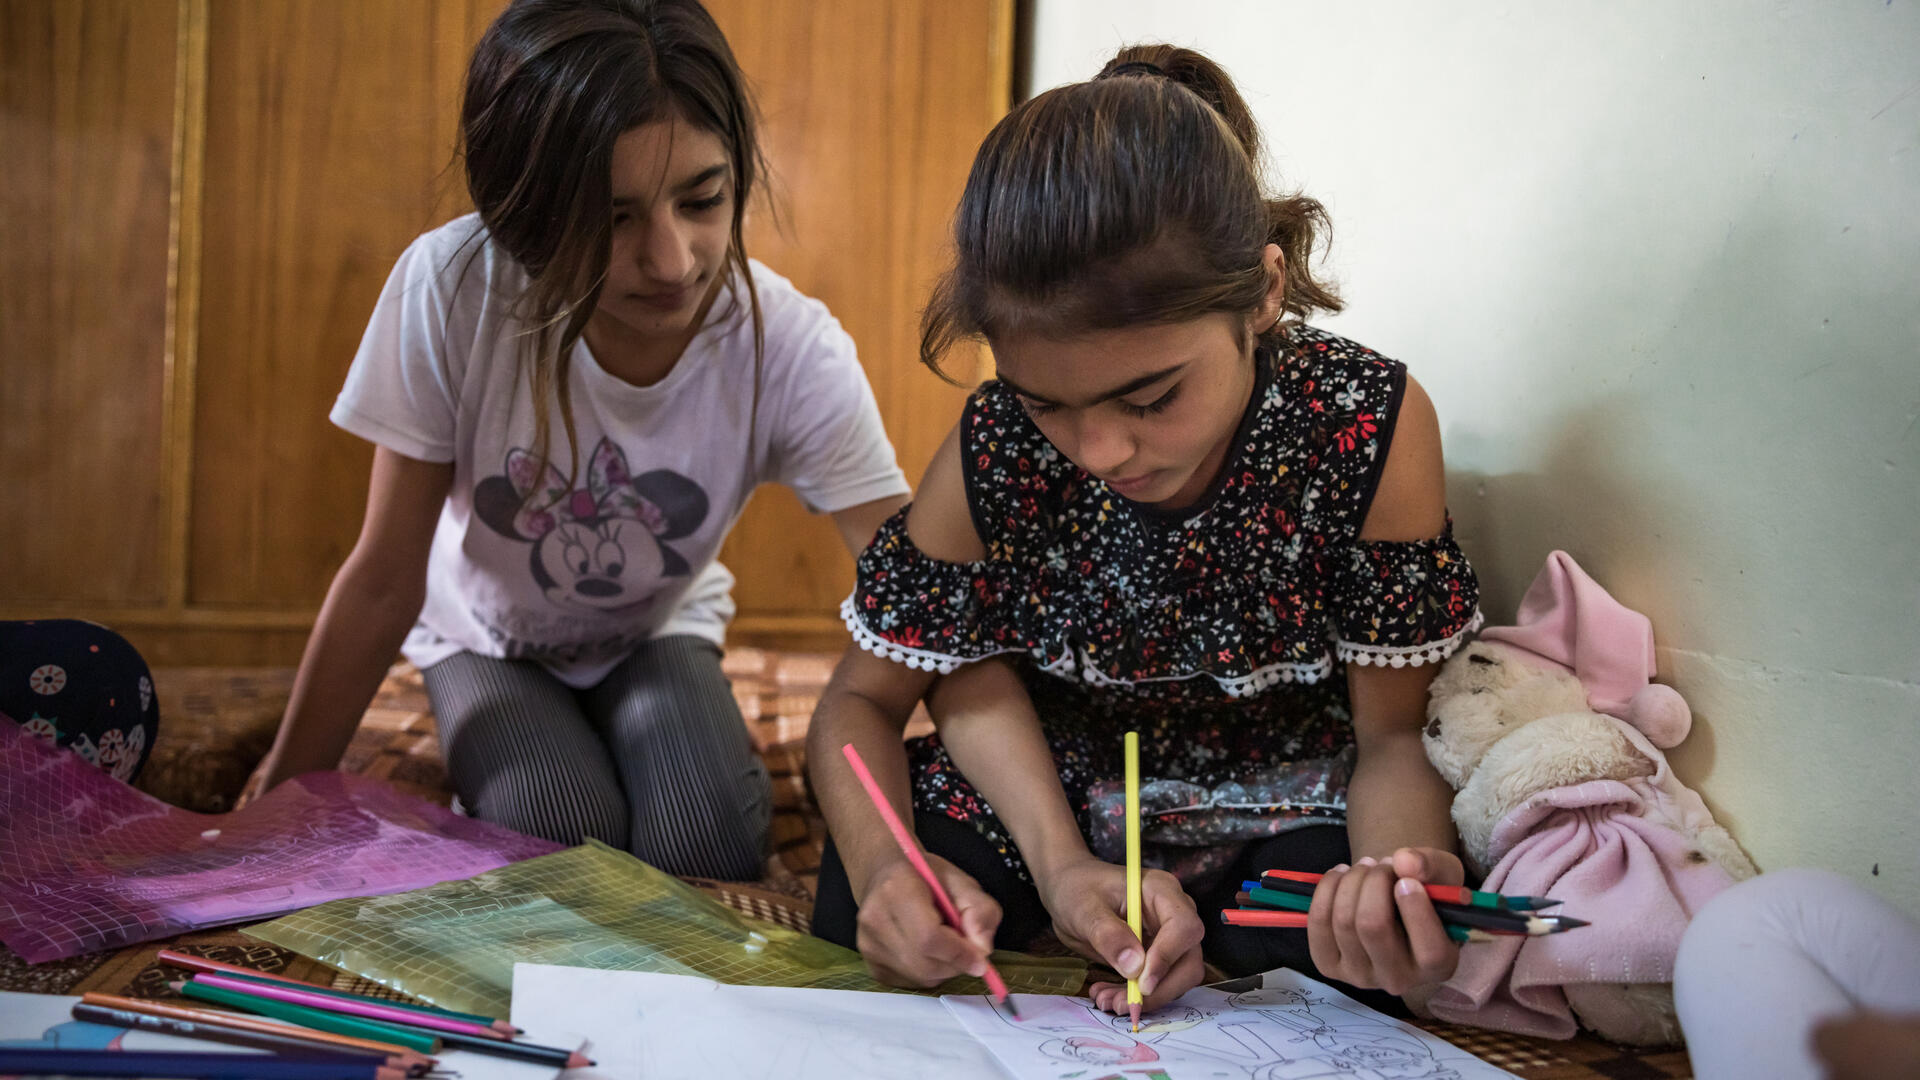 Two Yazidi sisters in Sinjar, Iraq sit on the floor of their home, coloring